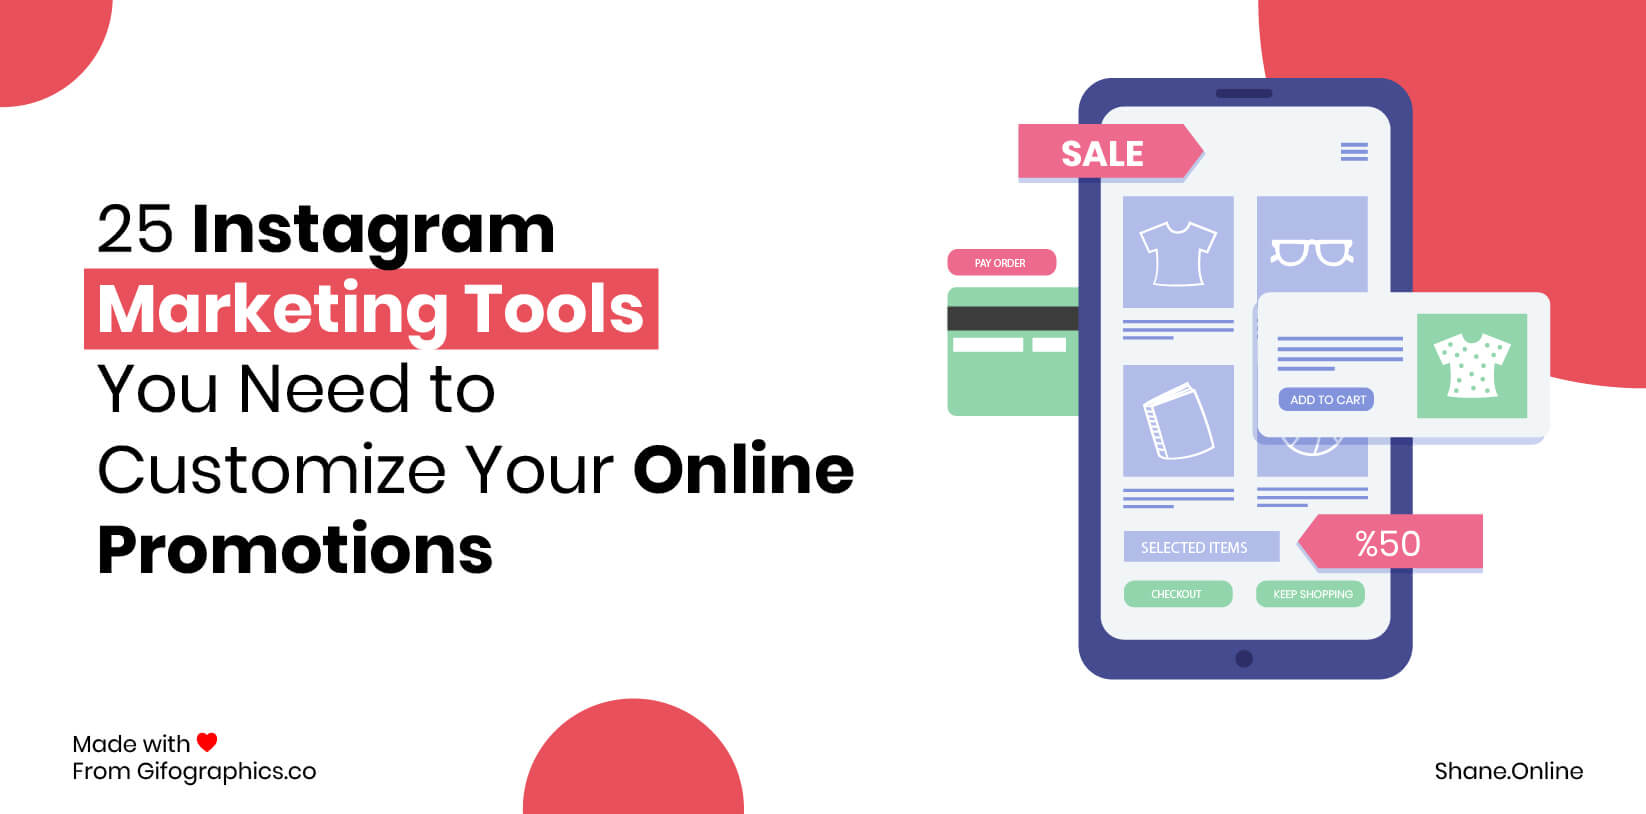 top 10 instagram tools for marketers blog whatagraph Top 25 Instagram Marketing Tools To Customize Your Online Promotions